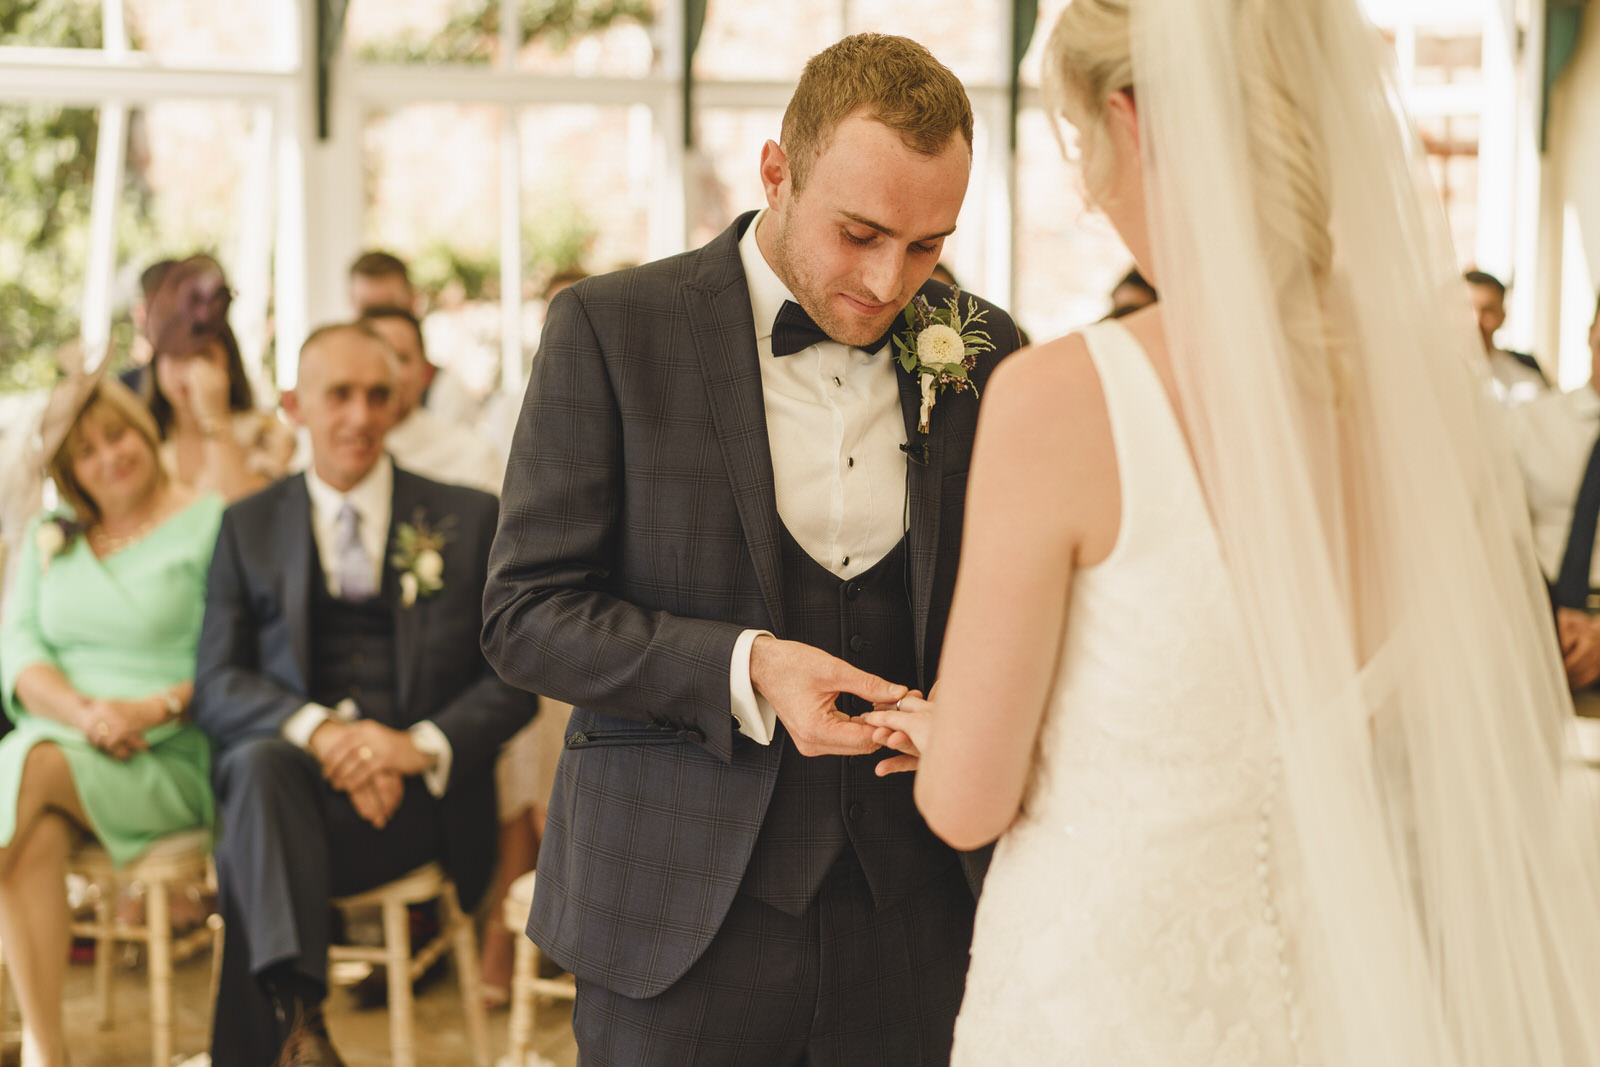 the groom carefully places the ring upon the finger of his bride